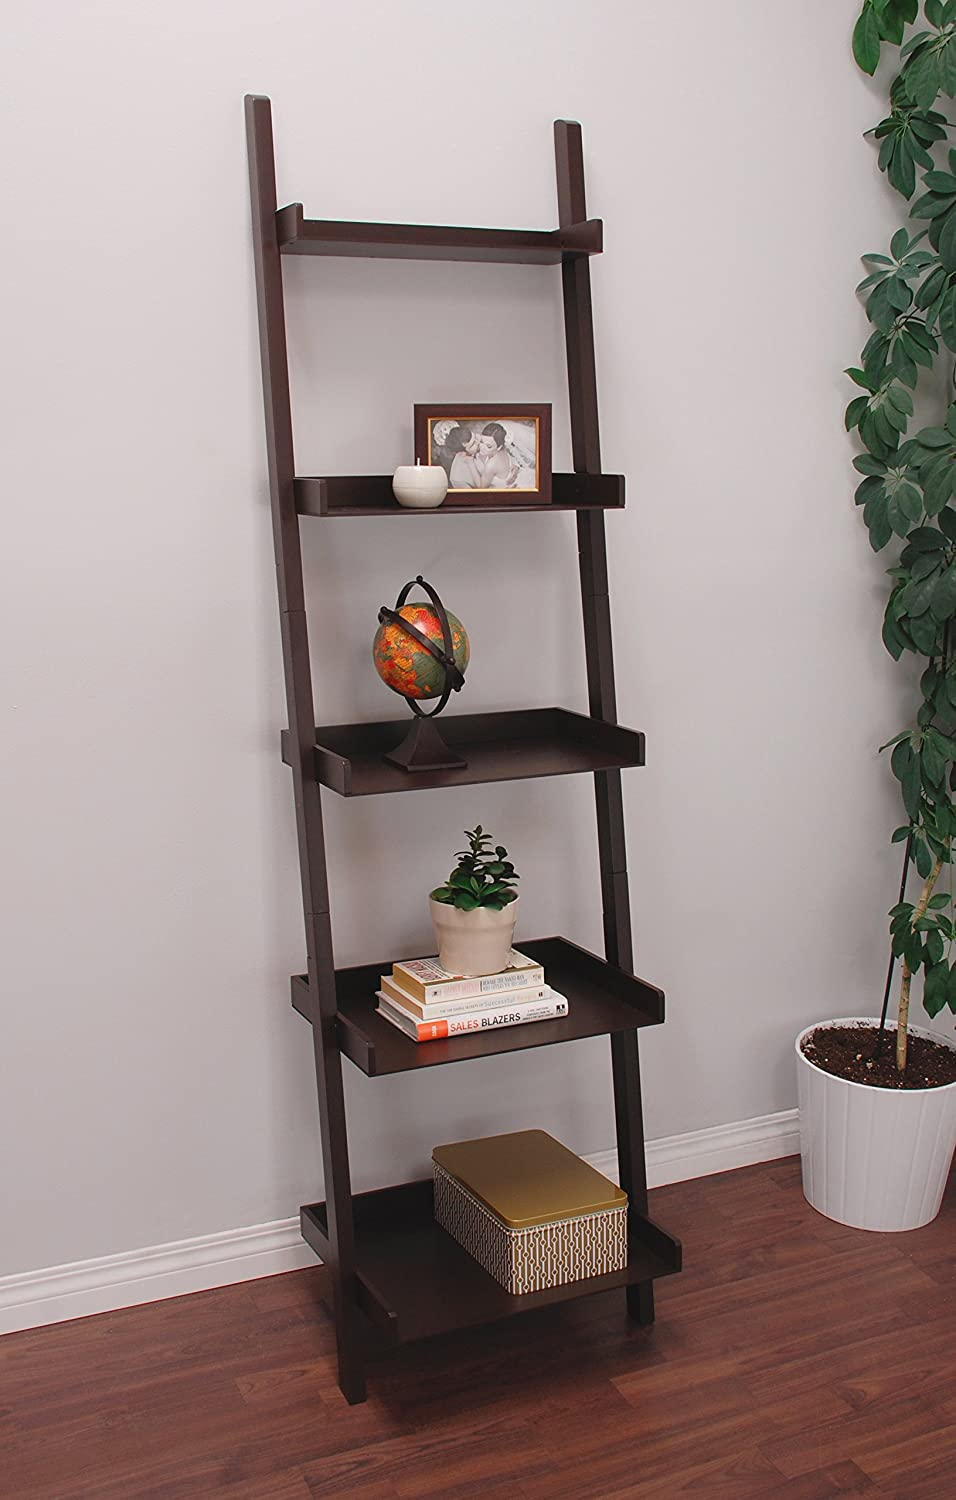 Kiera Grace Hadfield 5-Tier Leaning Wall Shelf, 18 67-Inch, Espresso AZ Home and Gifts FN43648-1